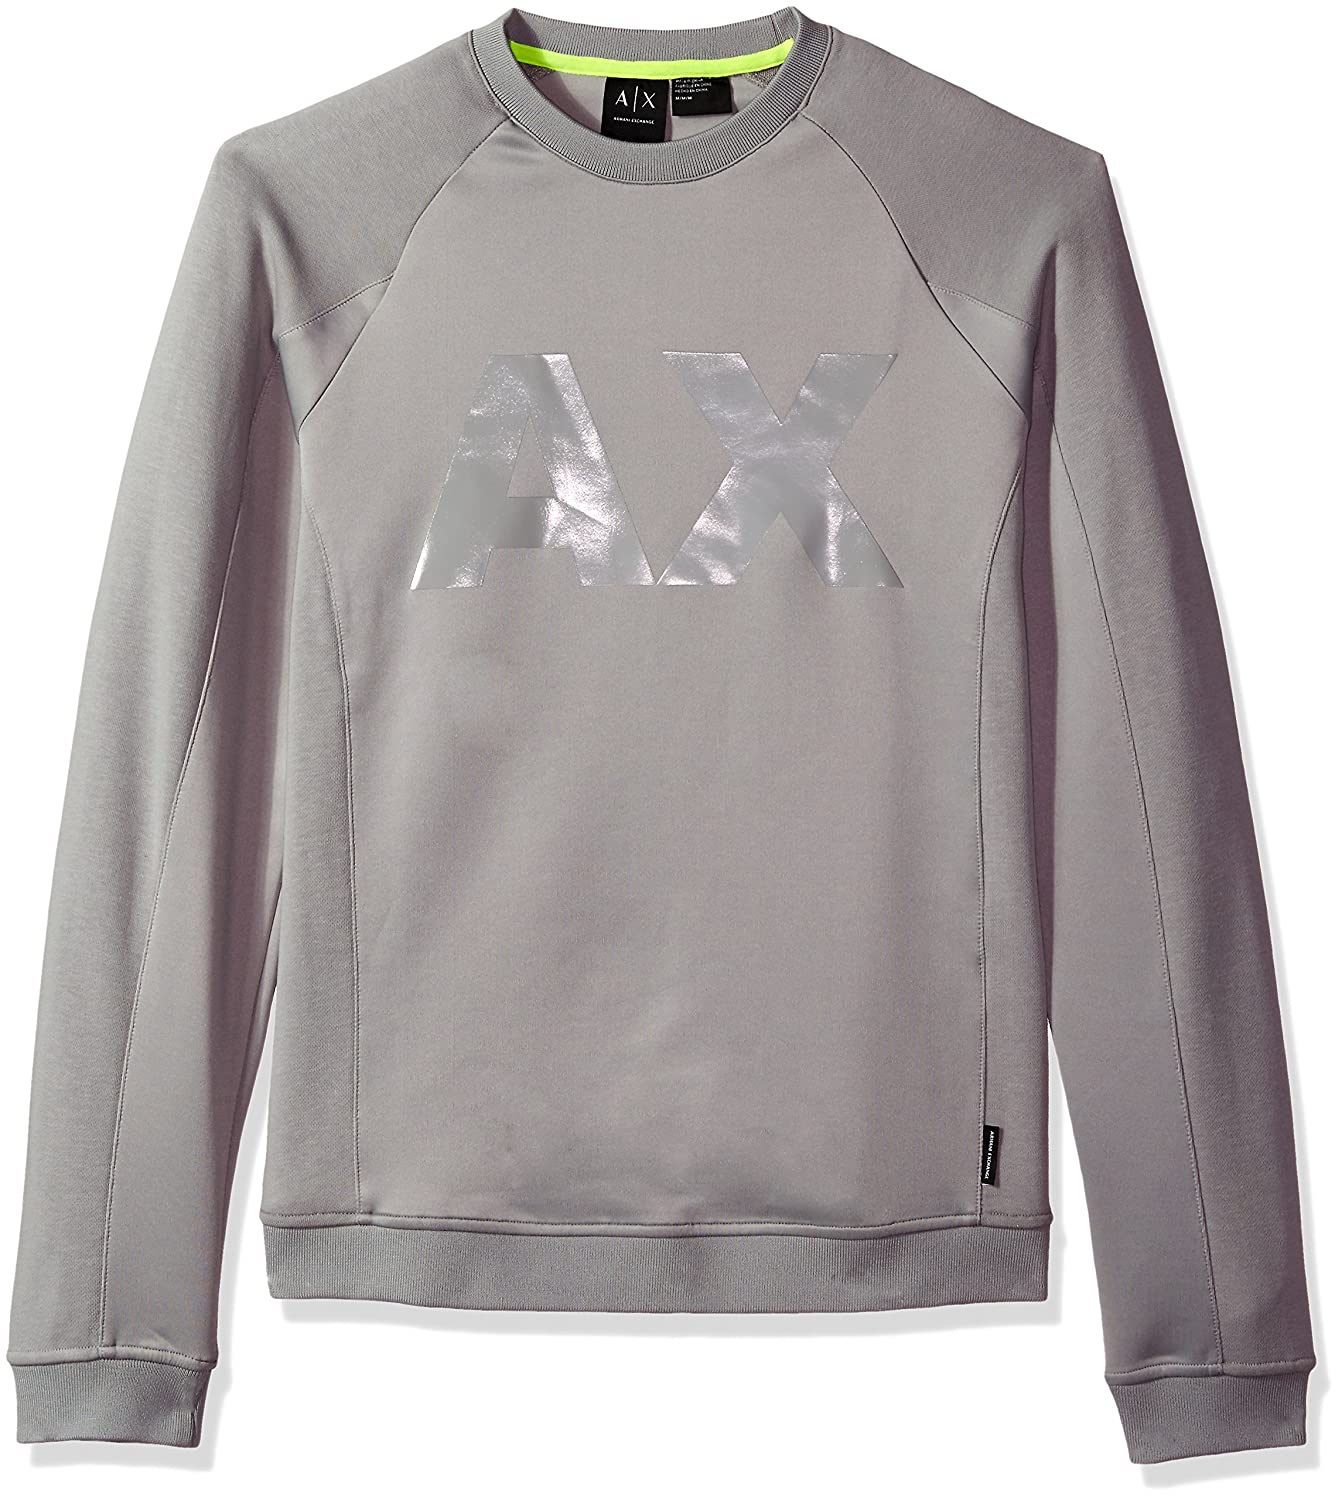 Amazon.com: A|X Armani Exchange Mens Neoprene Sweatshirt Ax Logo: Clothing